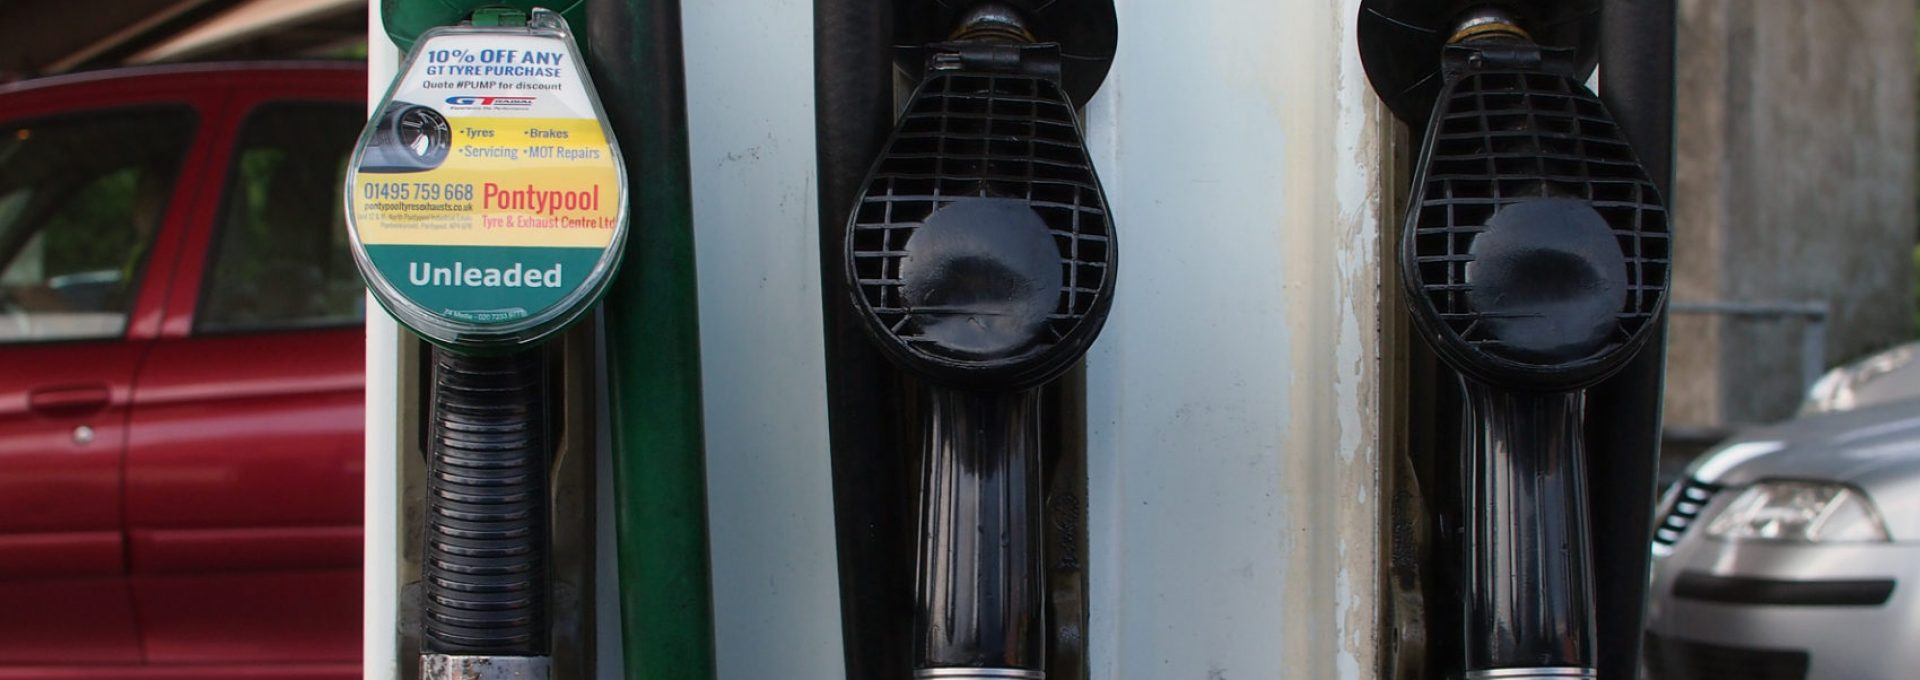 Petrol and diesel pumps at a filling station (fuel)